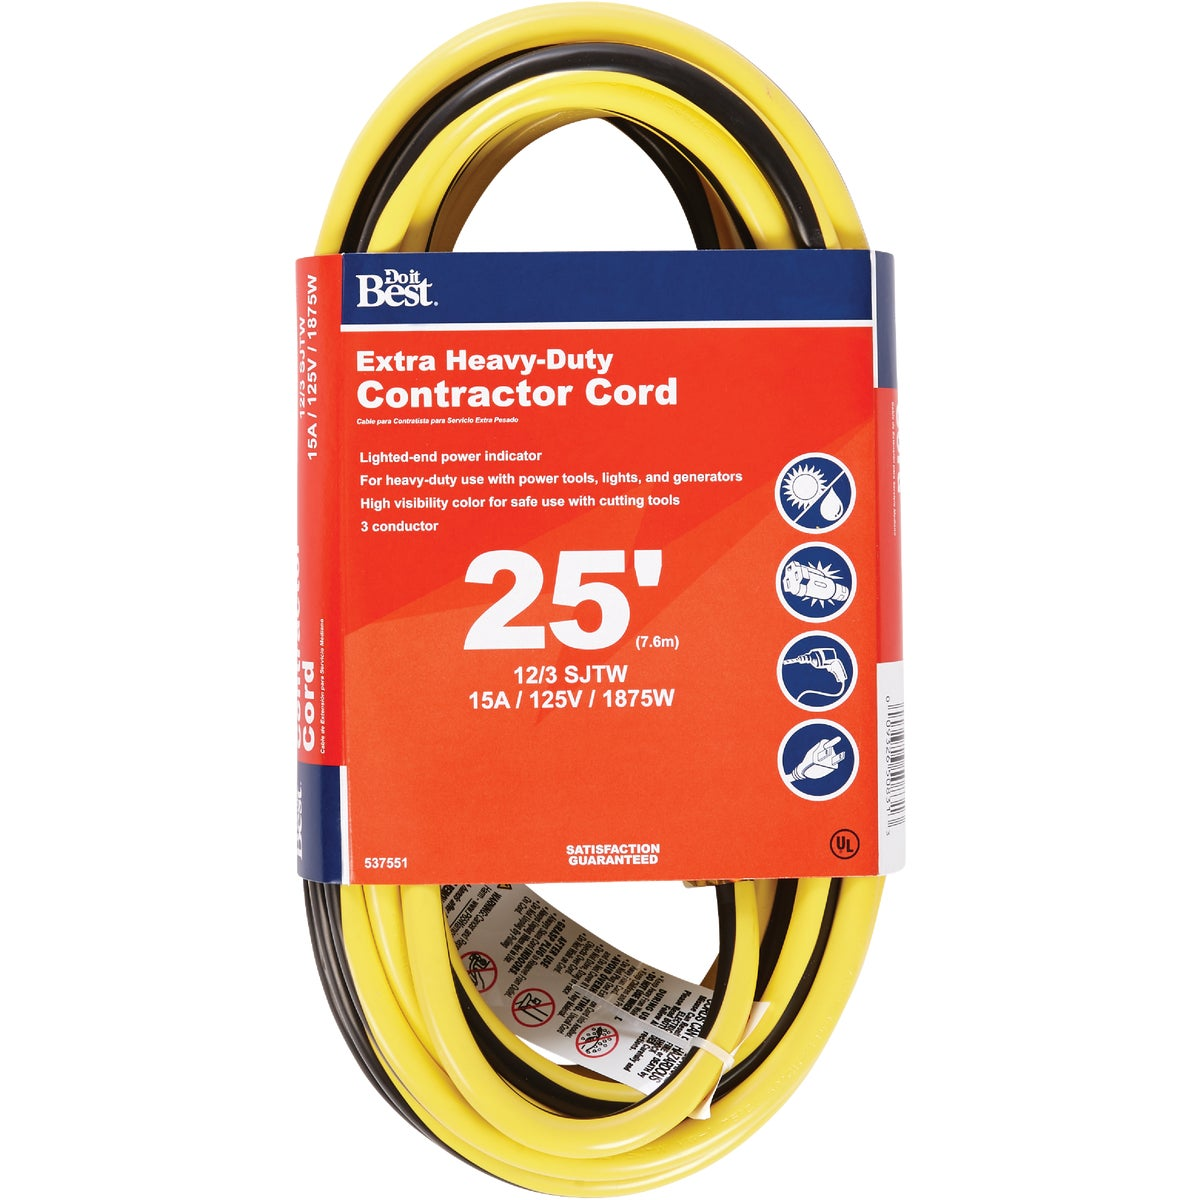 25' 12/3 LIGHTED CORD - 553054 by Coleman Cable Hwg